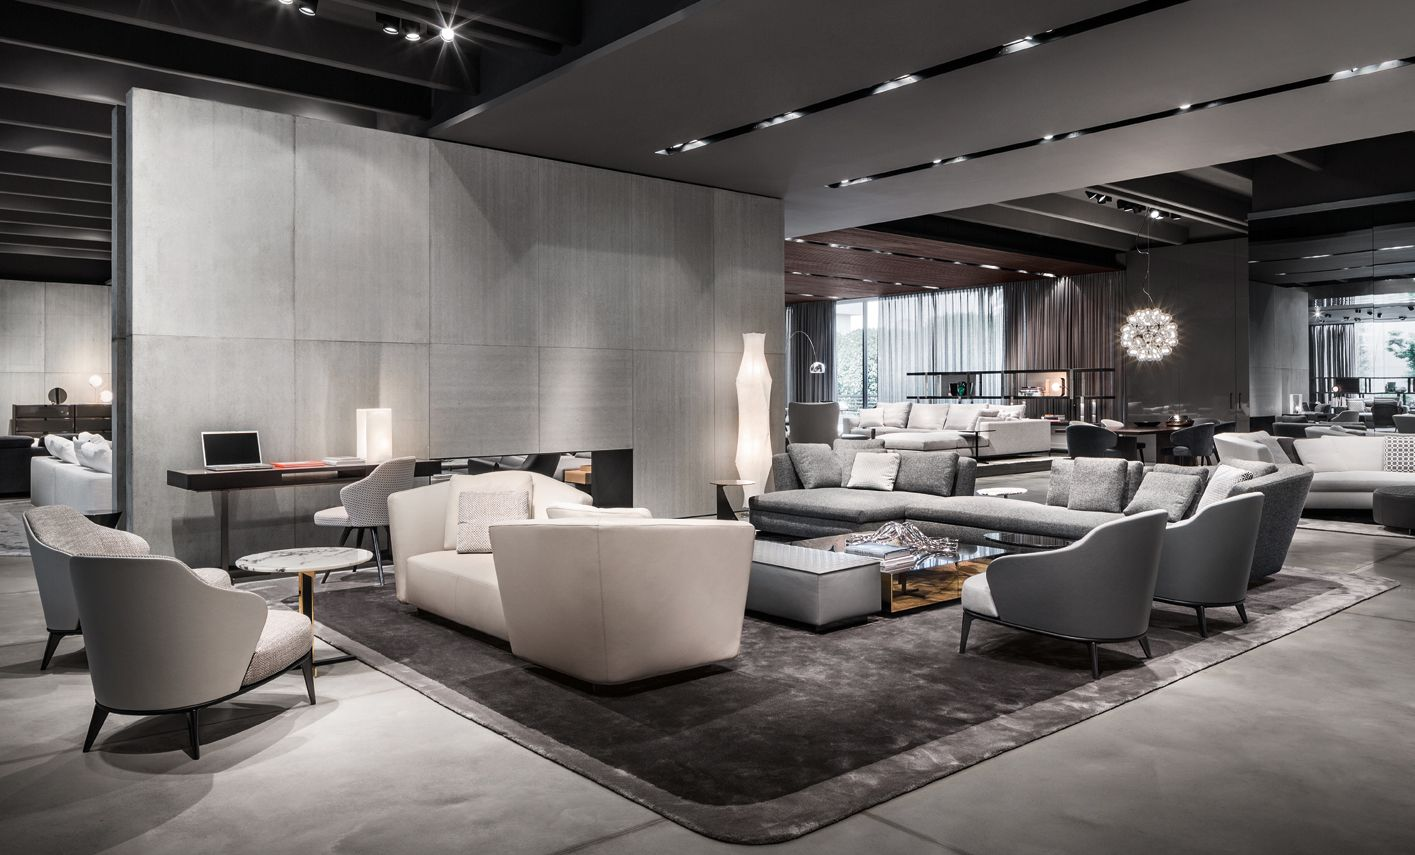 Furniture Design News the minotti stand at salone in milan. this just isn't a stand